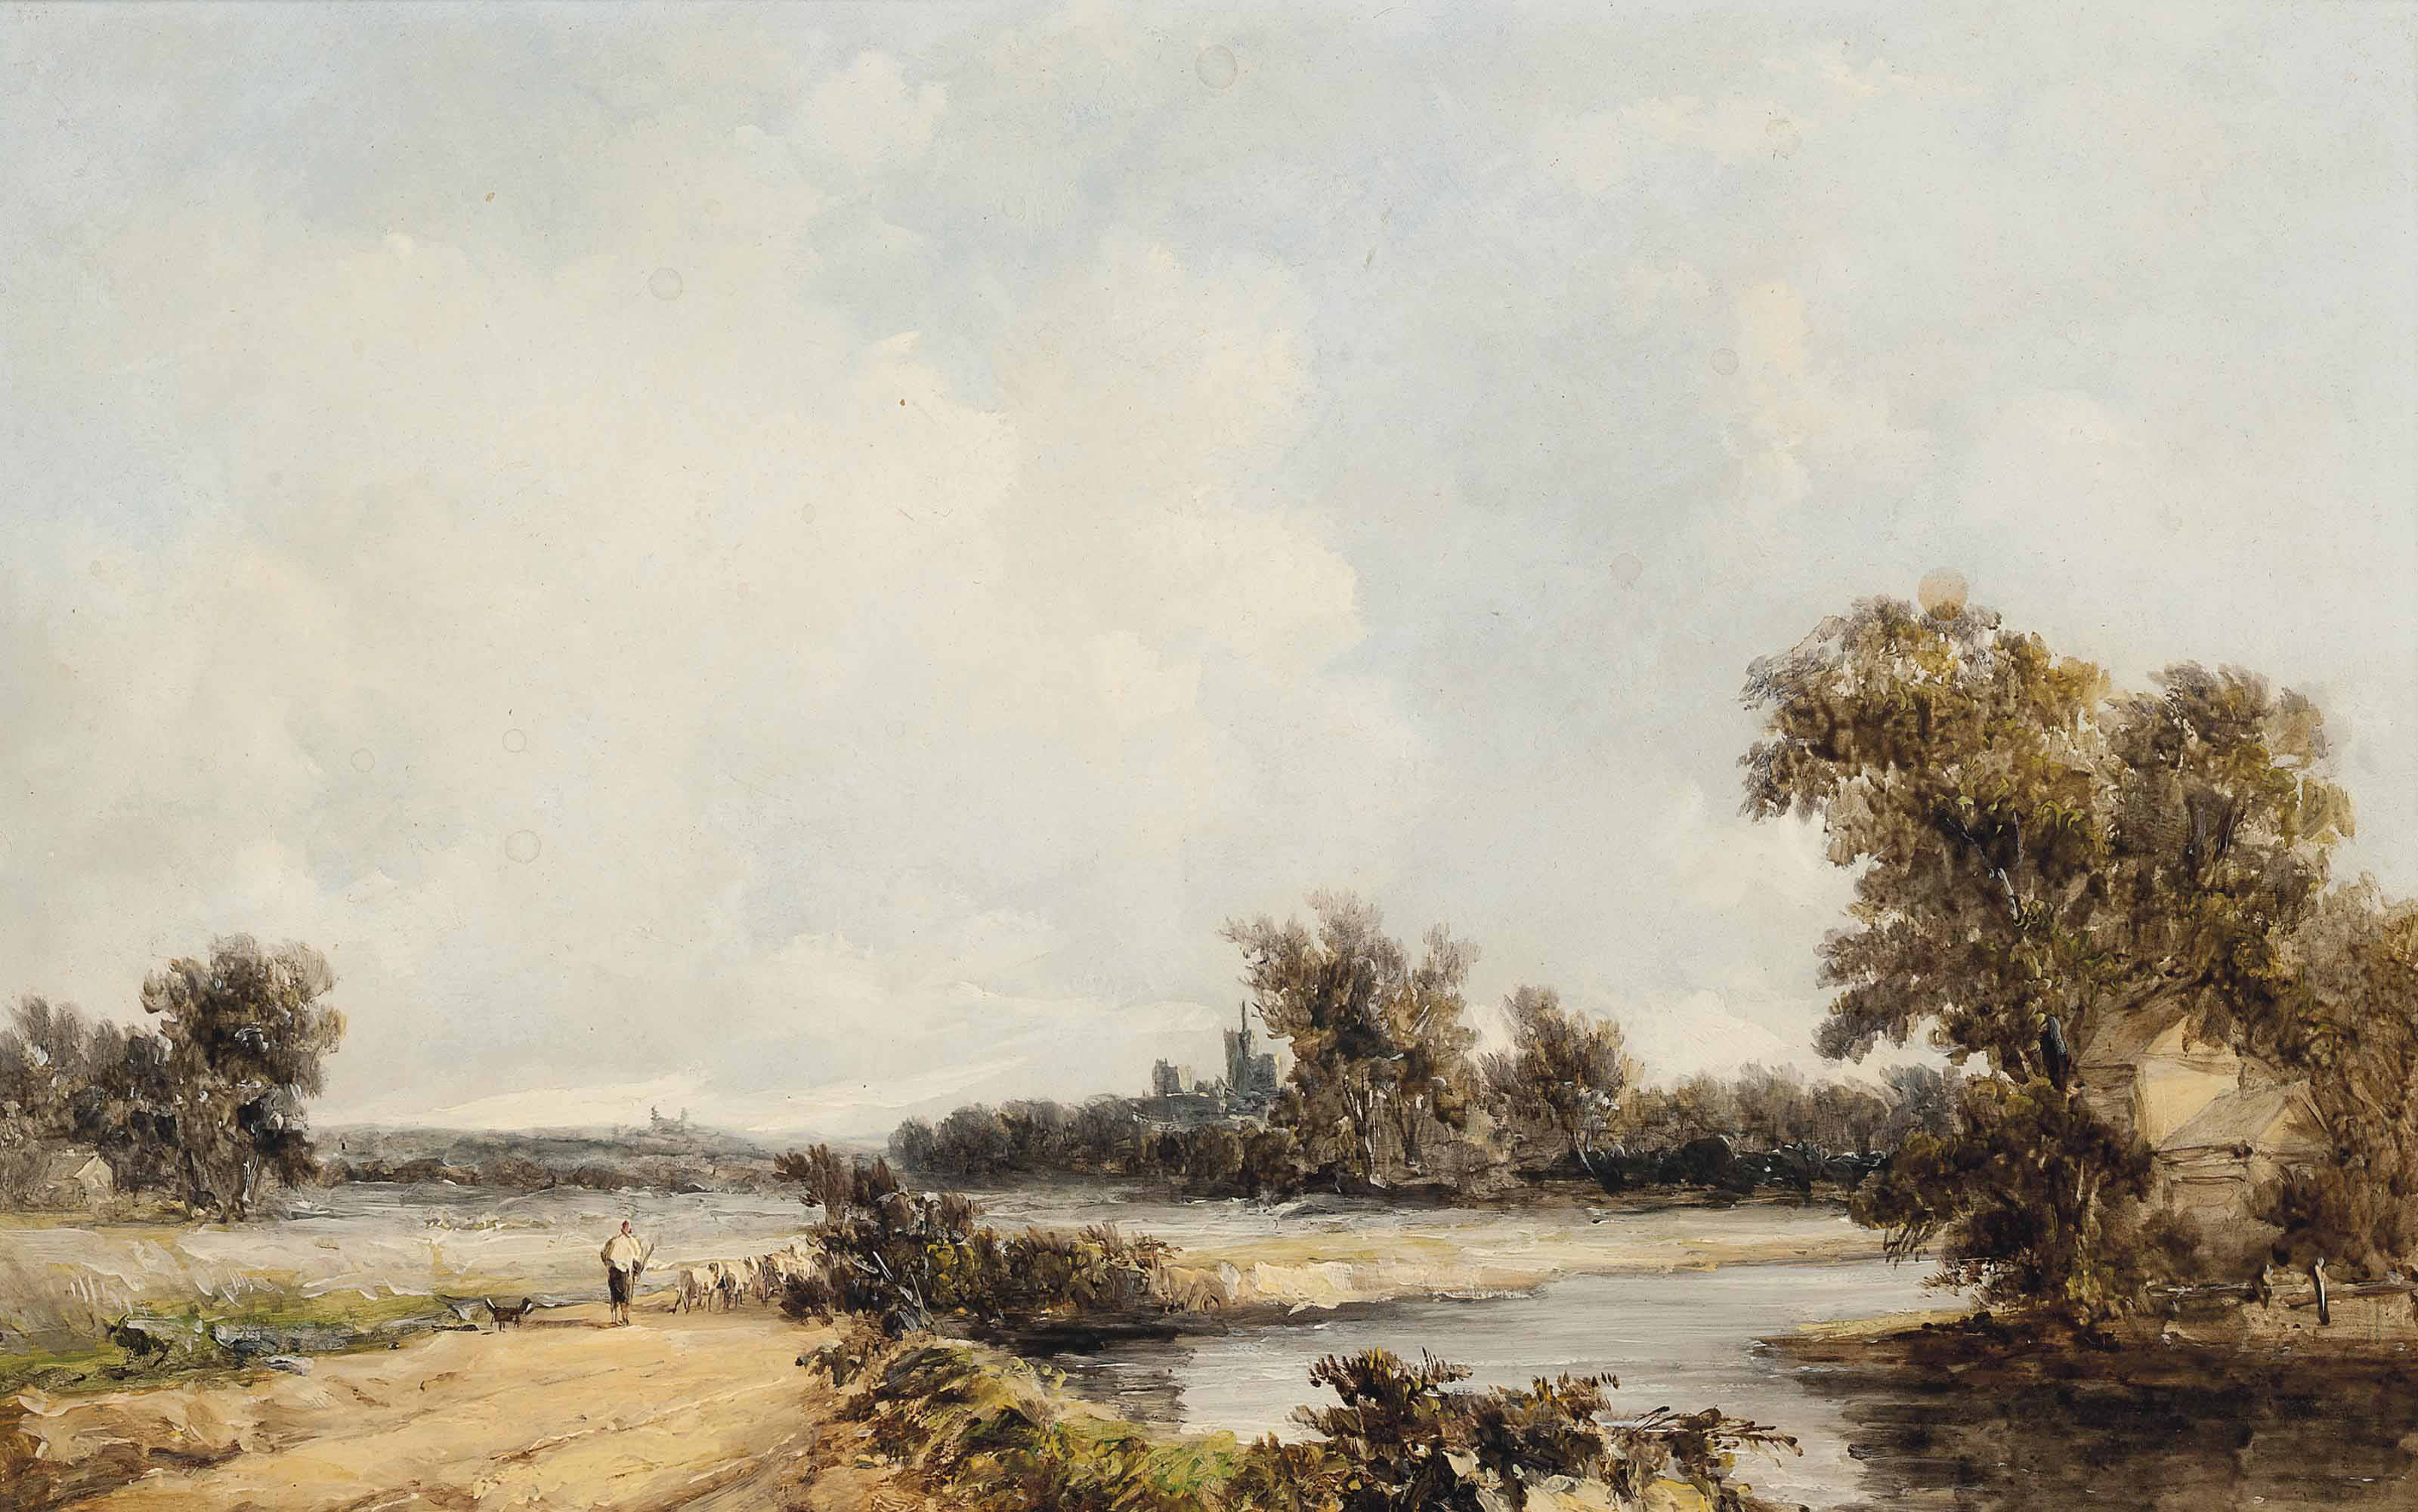 The banks of the Thames, near Eton